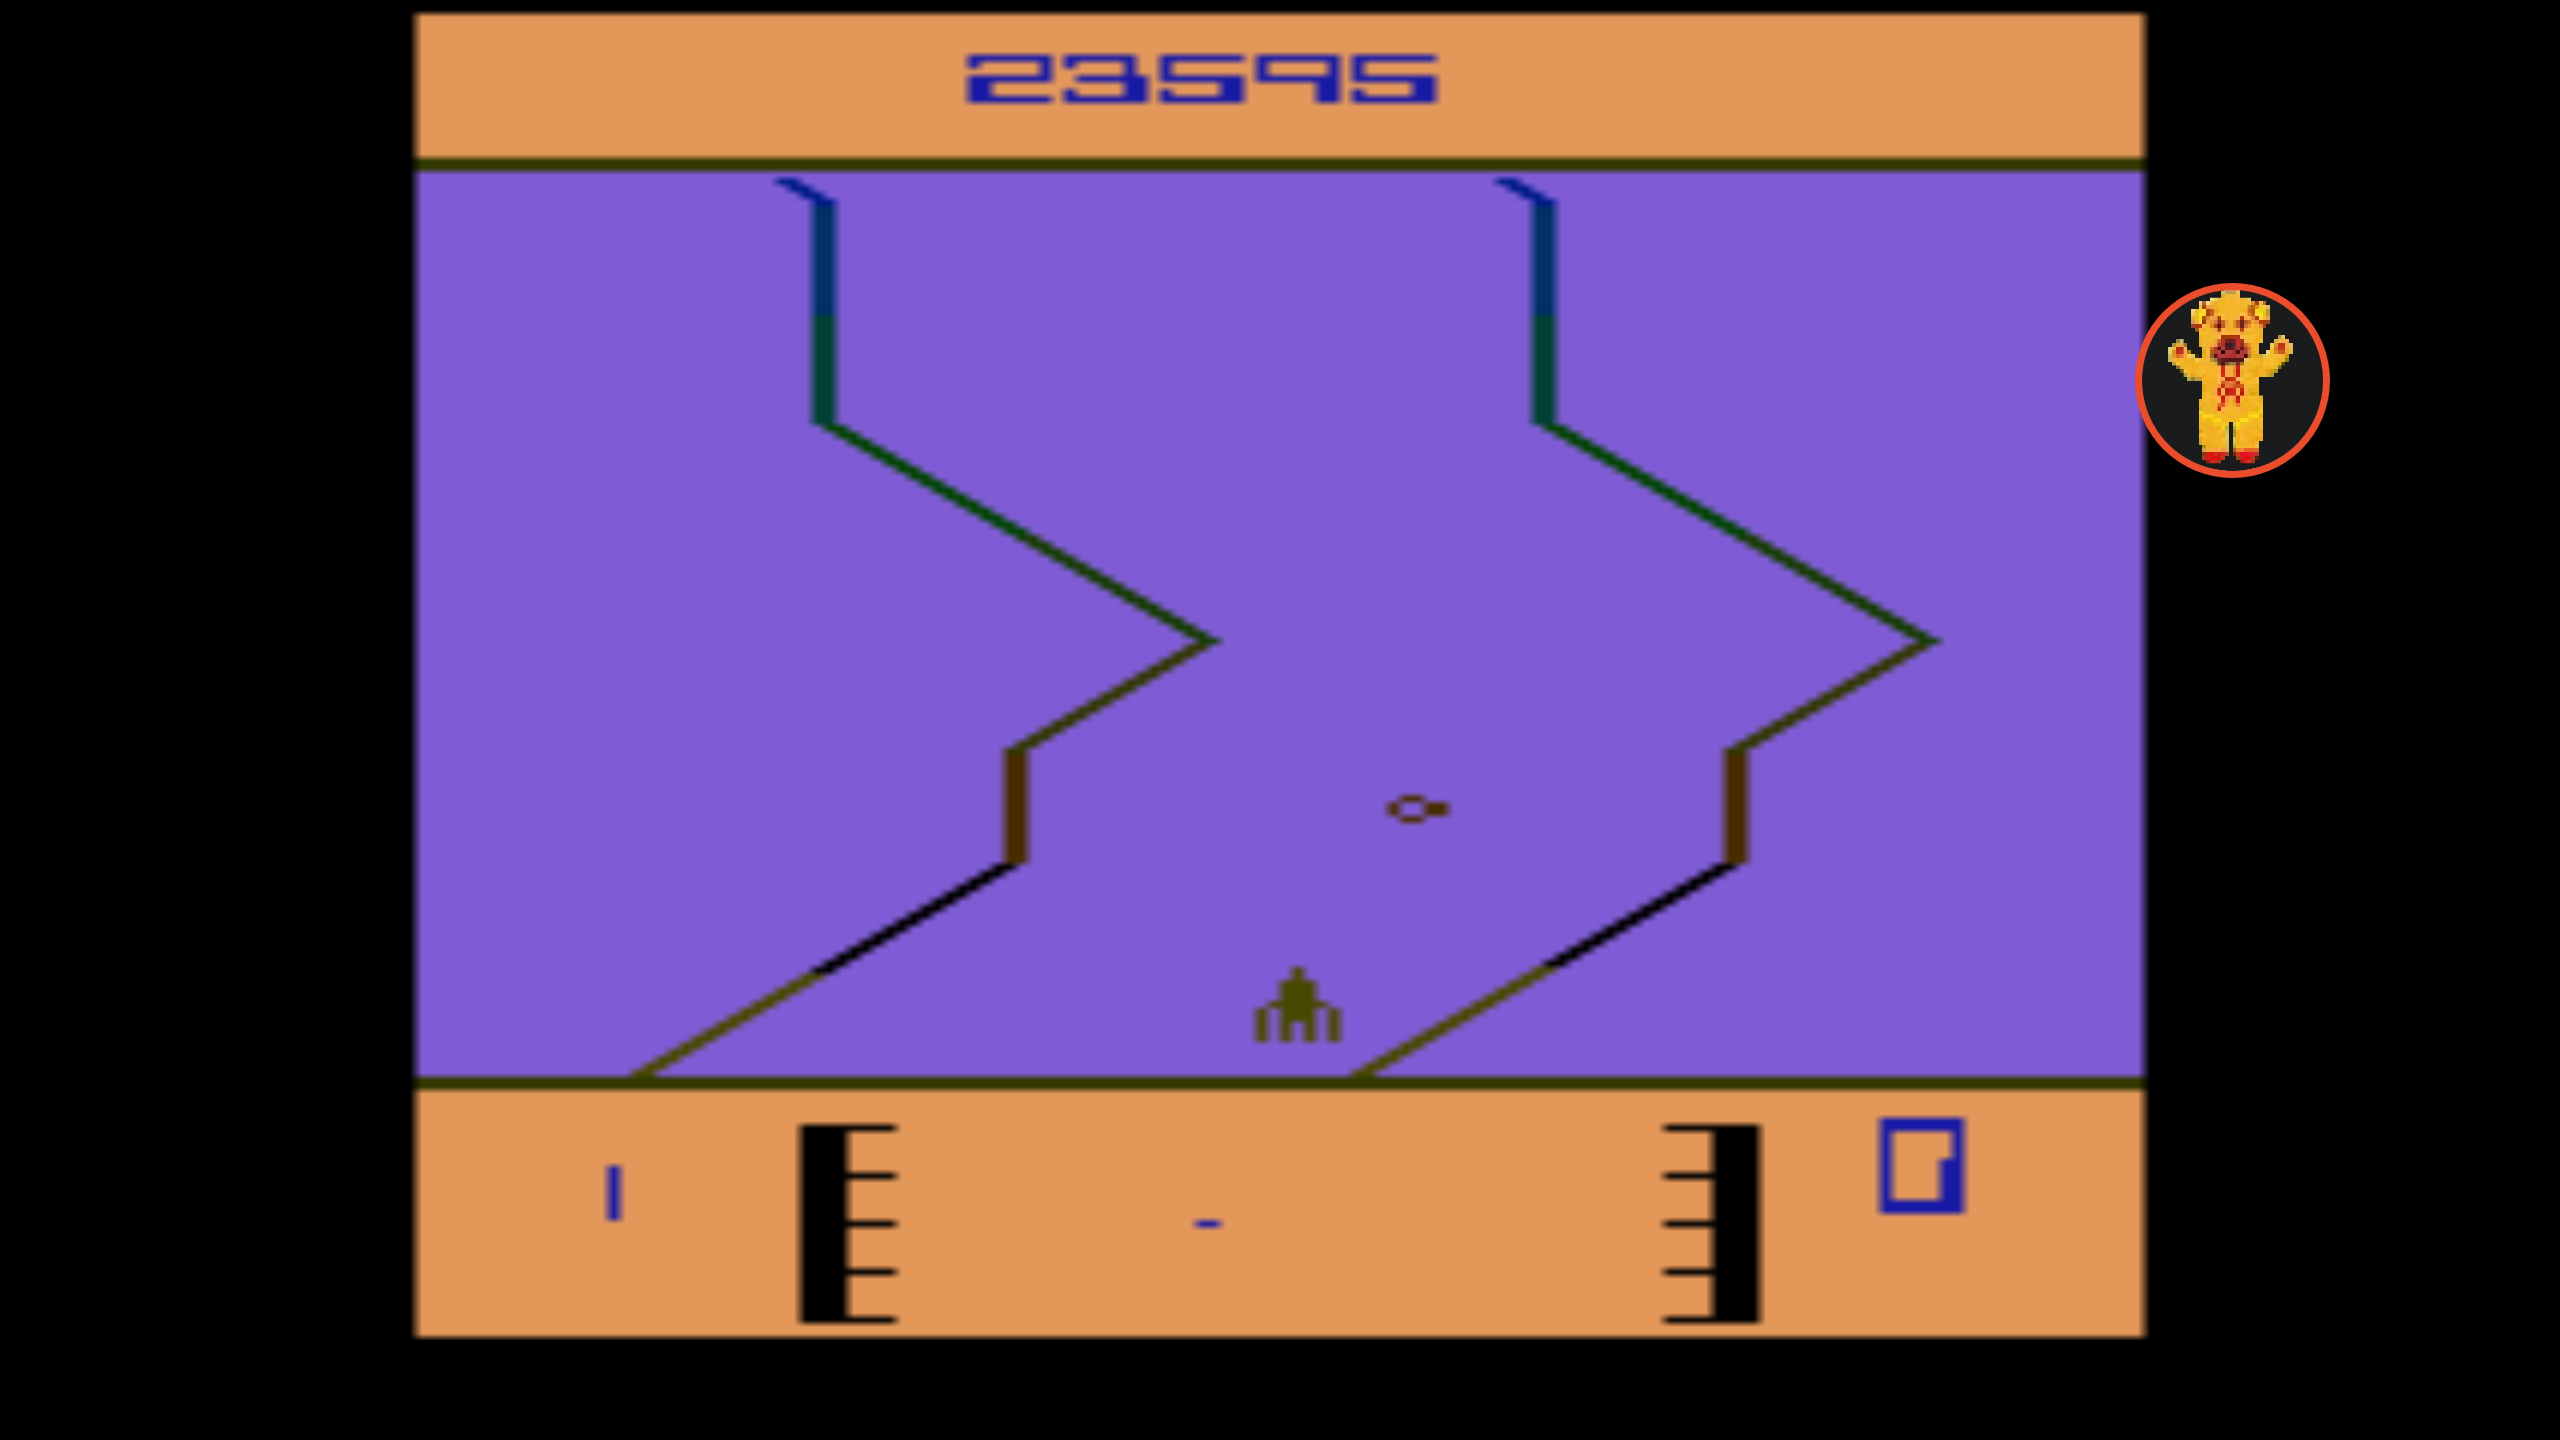 Bamse: Fantastic Voyage [Game 2] (Atari 2600 Emulated) 23,595 points on 2019-12-01 04:23:11